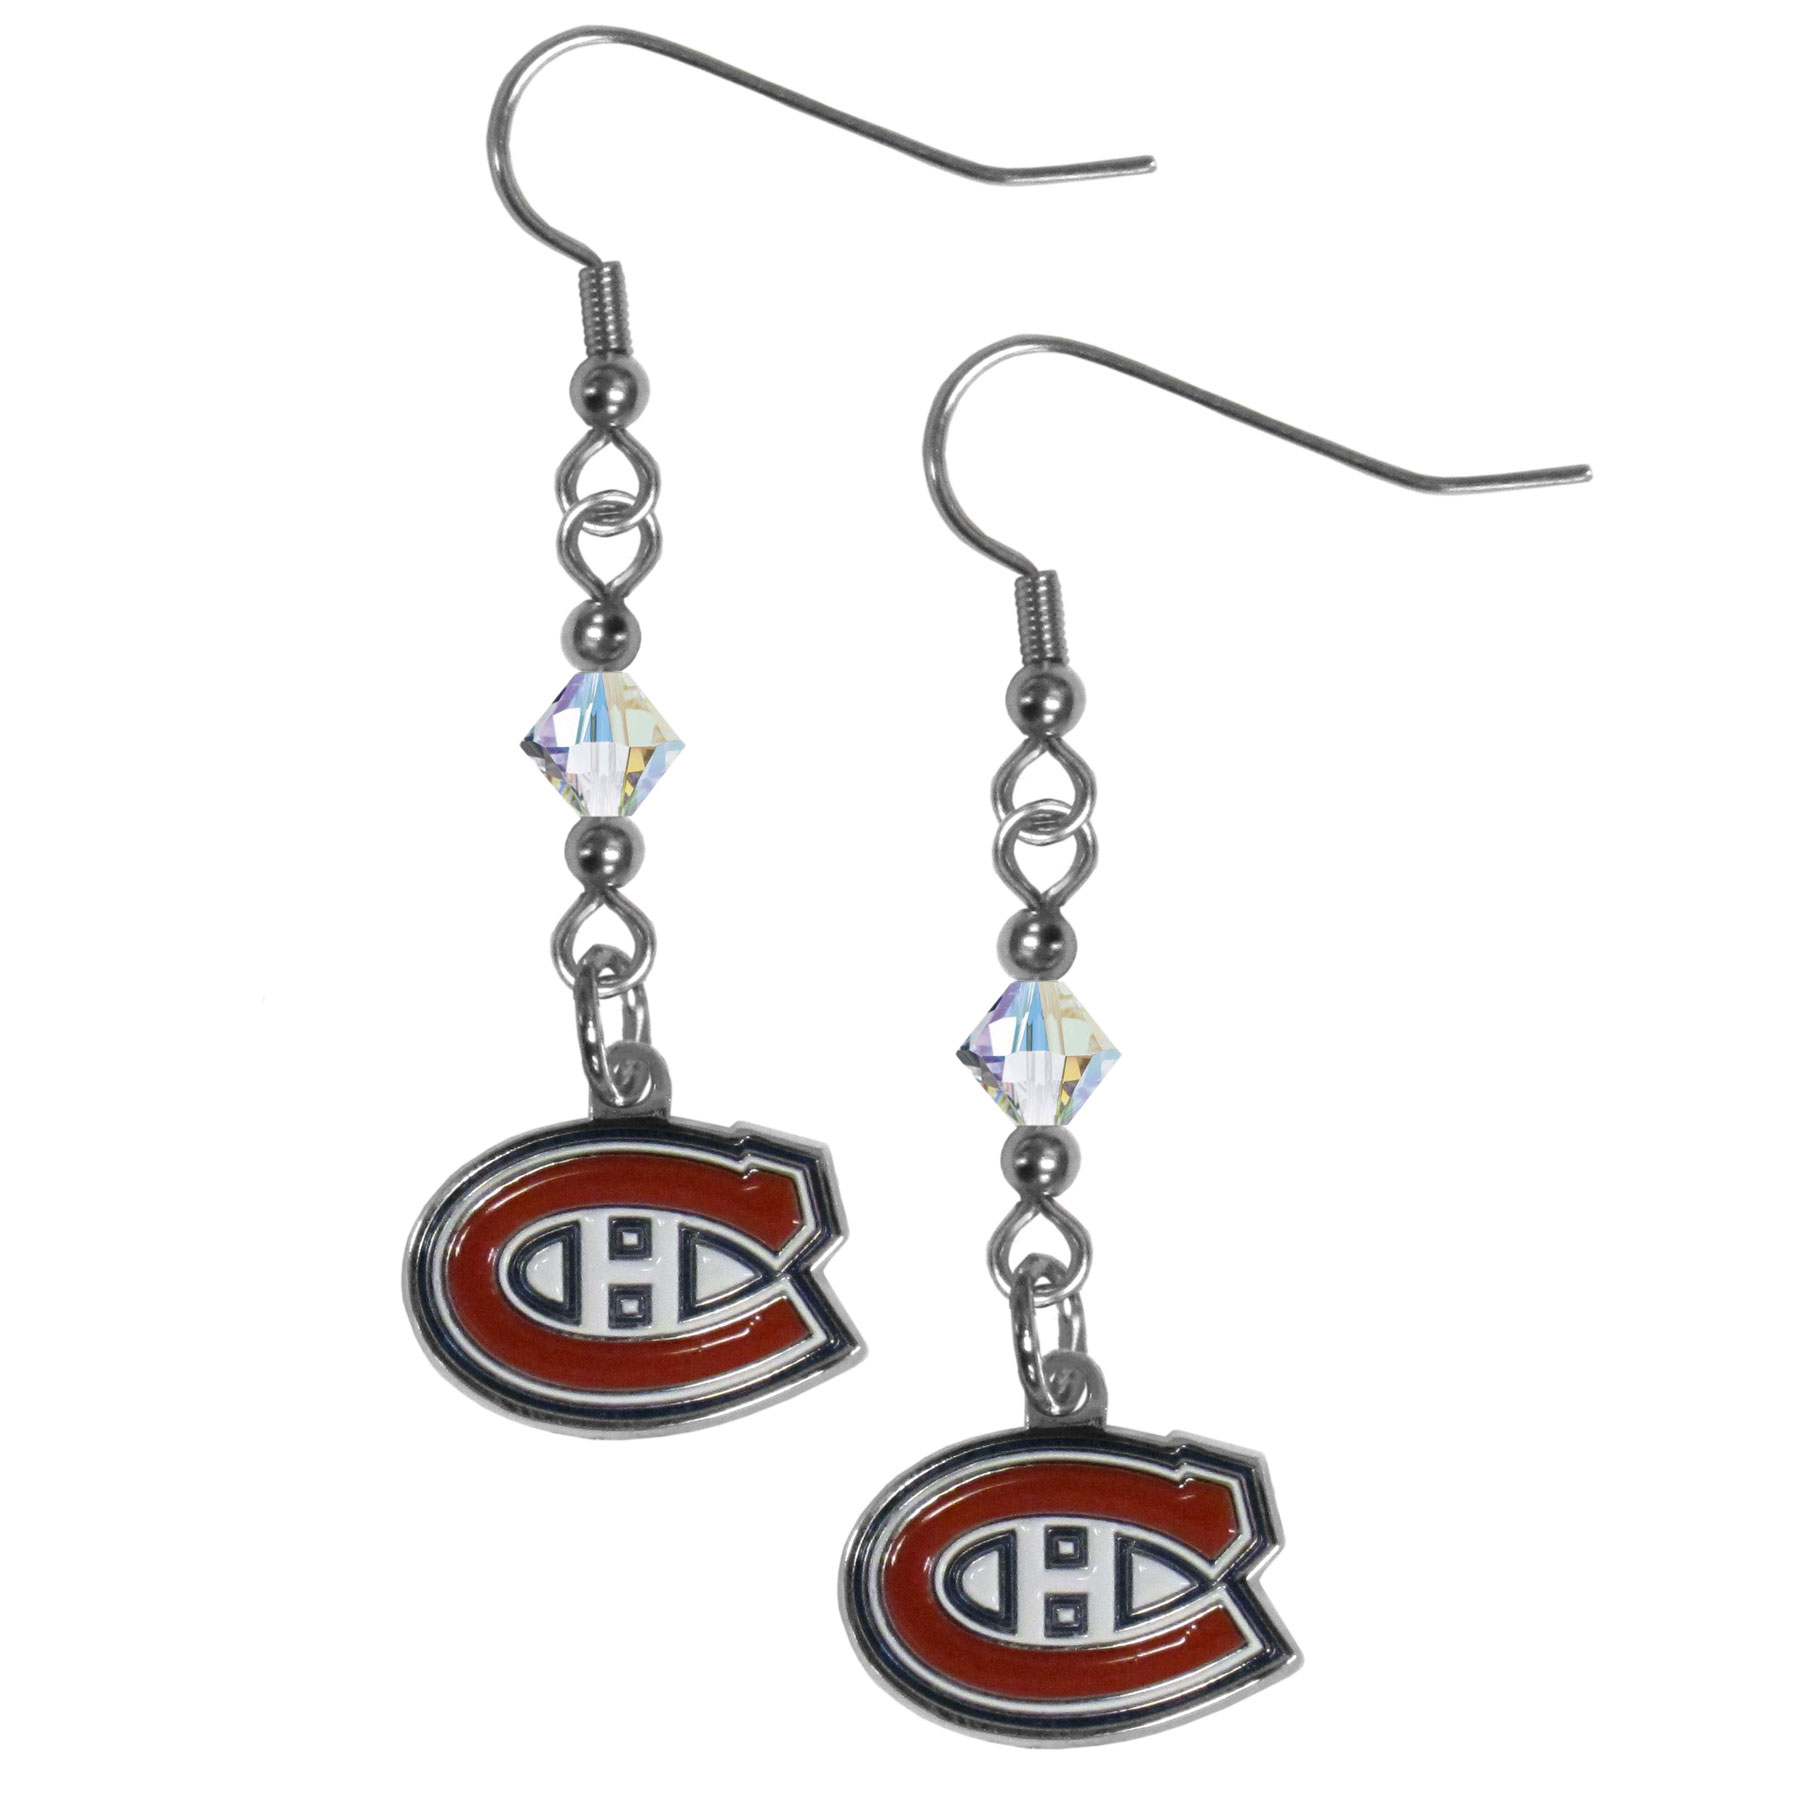 Montreal Canadiens® Crystal Dangle Earrings - Our crystal dangle earrings are the perfect accessory for your game day outfit! The earrings are approximately 1.5 inches long and feature an iridescent crystal bead and nickel free chrome Montreal Canadiens® charm on nickel free, hypoallergenic fishhook posts.